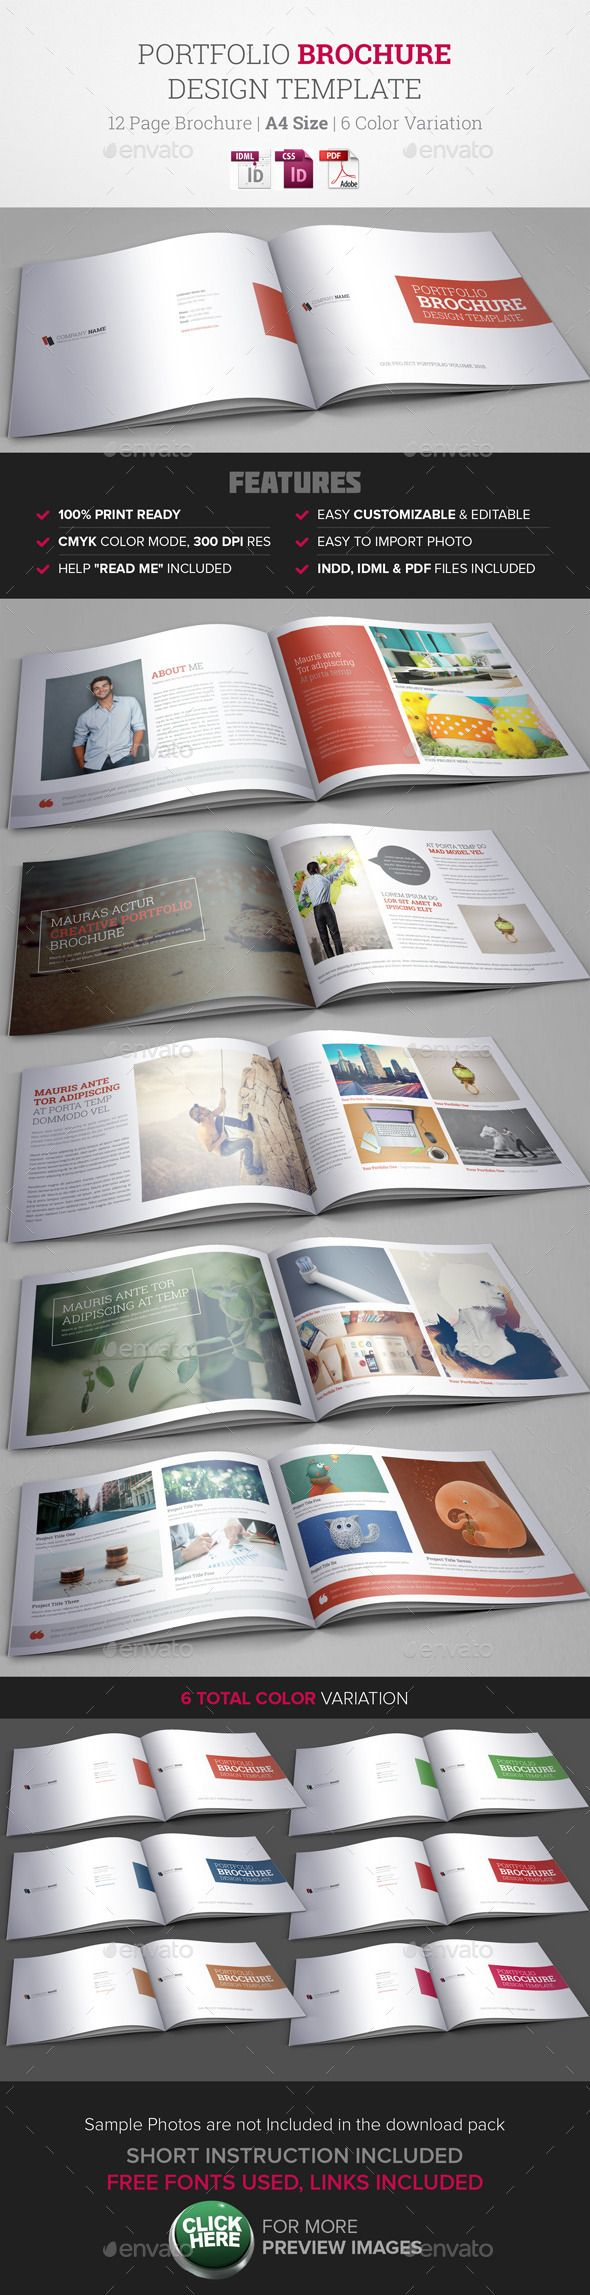 Portfolio Brochure InDesign Template #design #printtemplate Download: http://graphicriver.net/item/portfolio-brochure-indesign-template/9740942?ref=ksioks